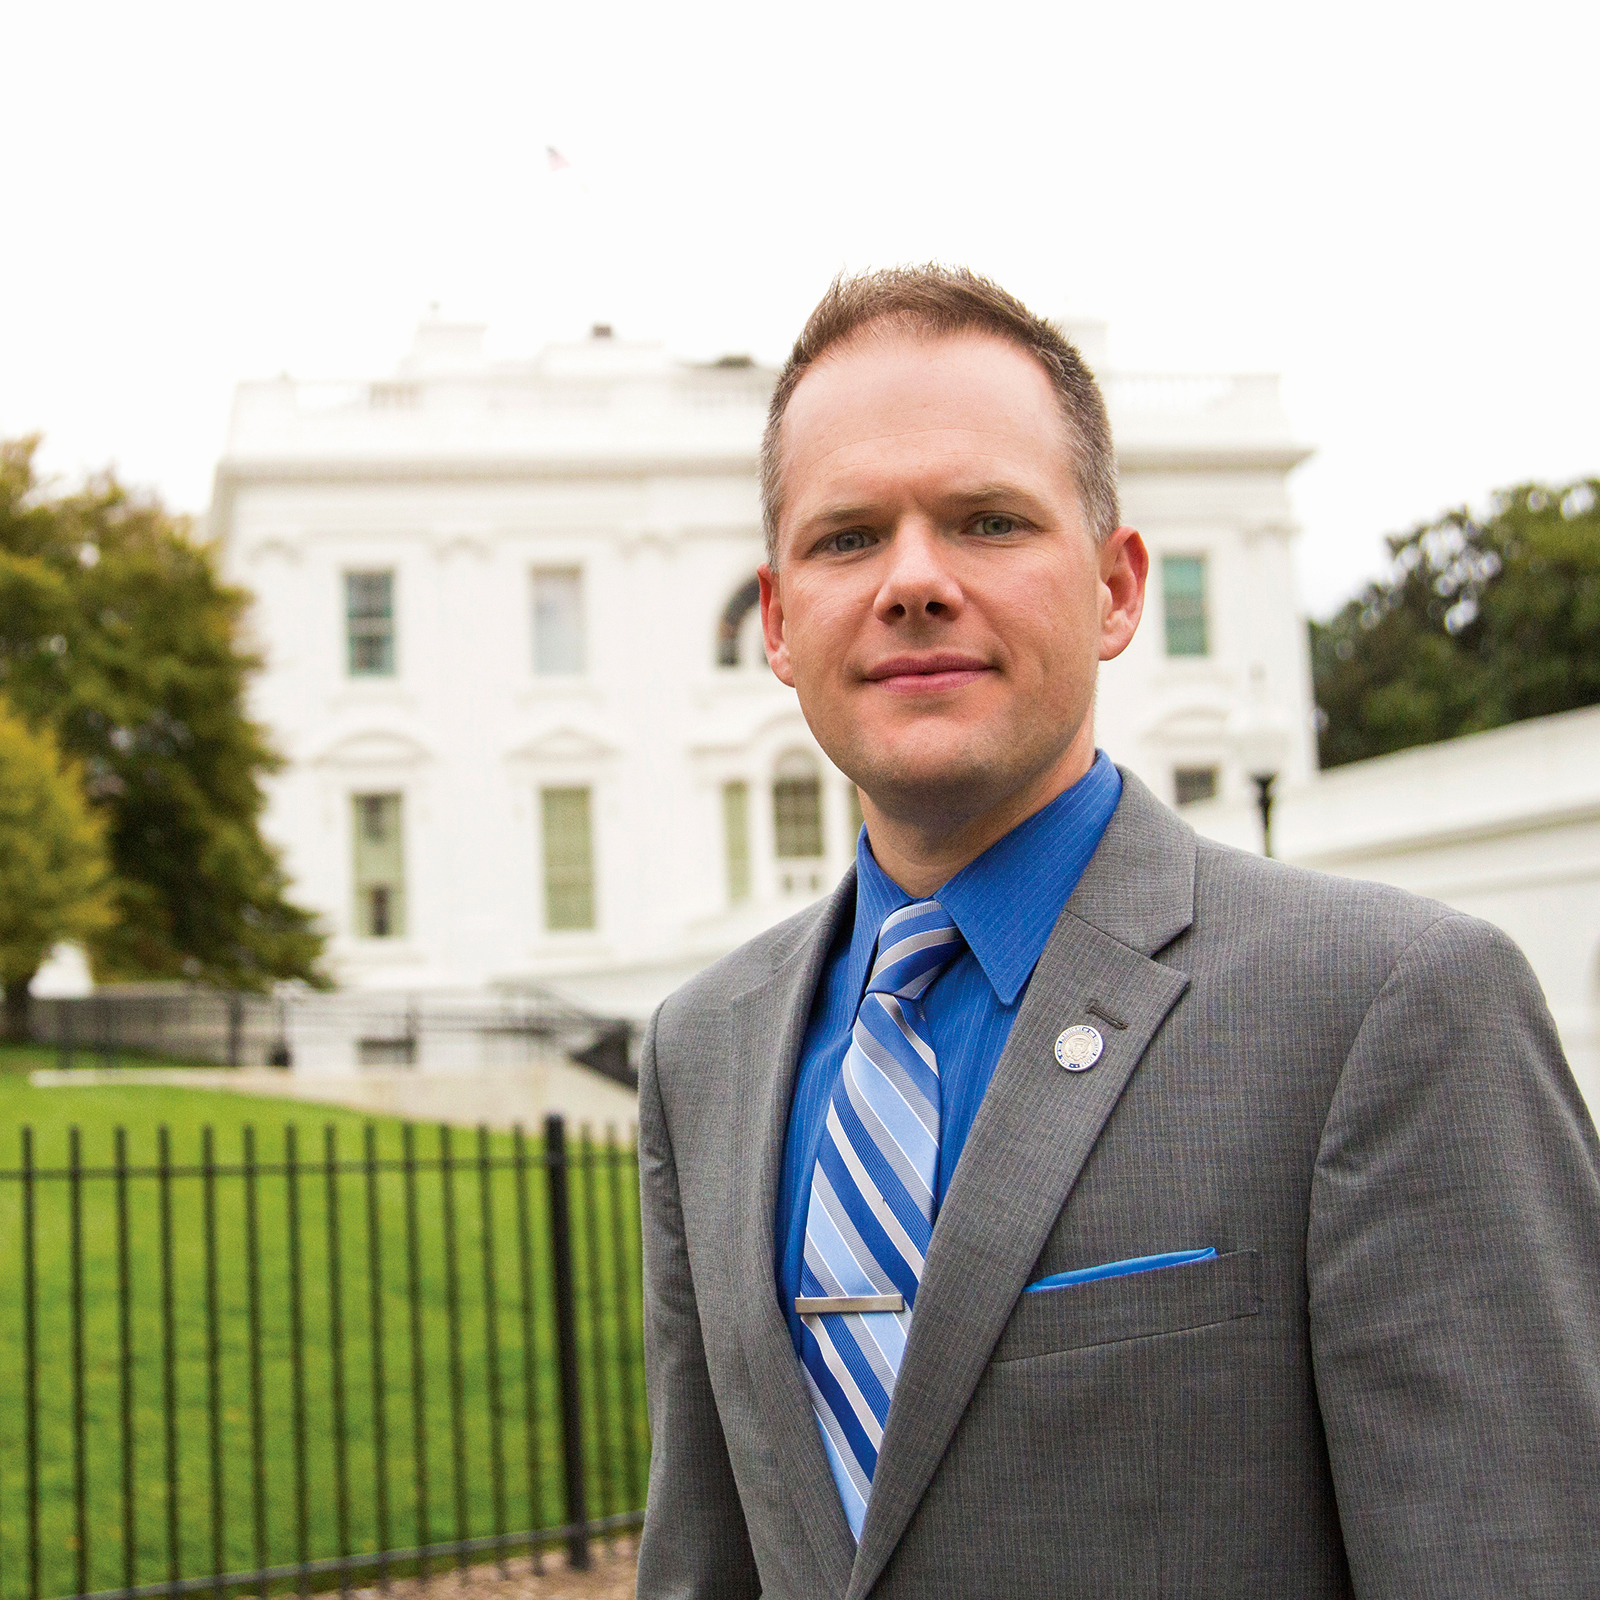 Rusty served as Acting New Media Technologies Director at the White House under President Obama helping shape cloud platform policy across the federal government.